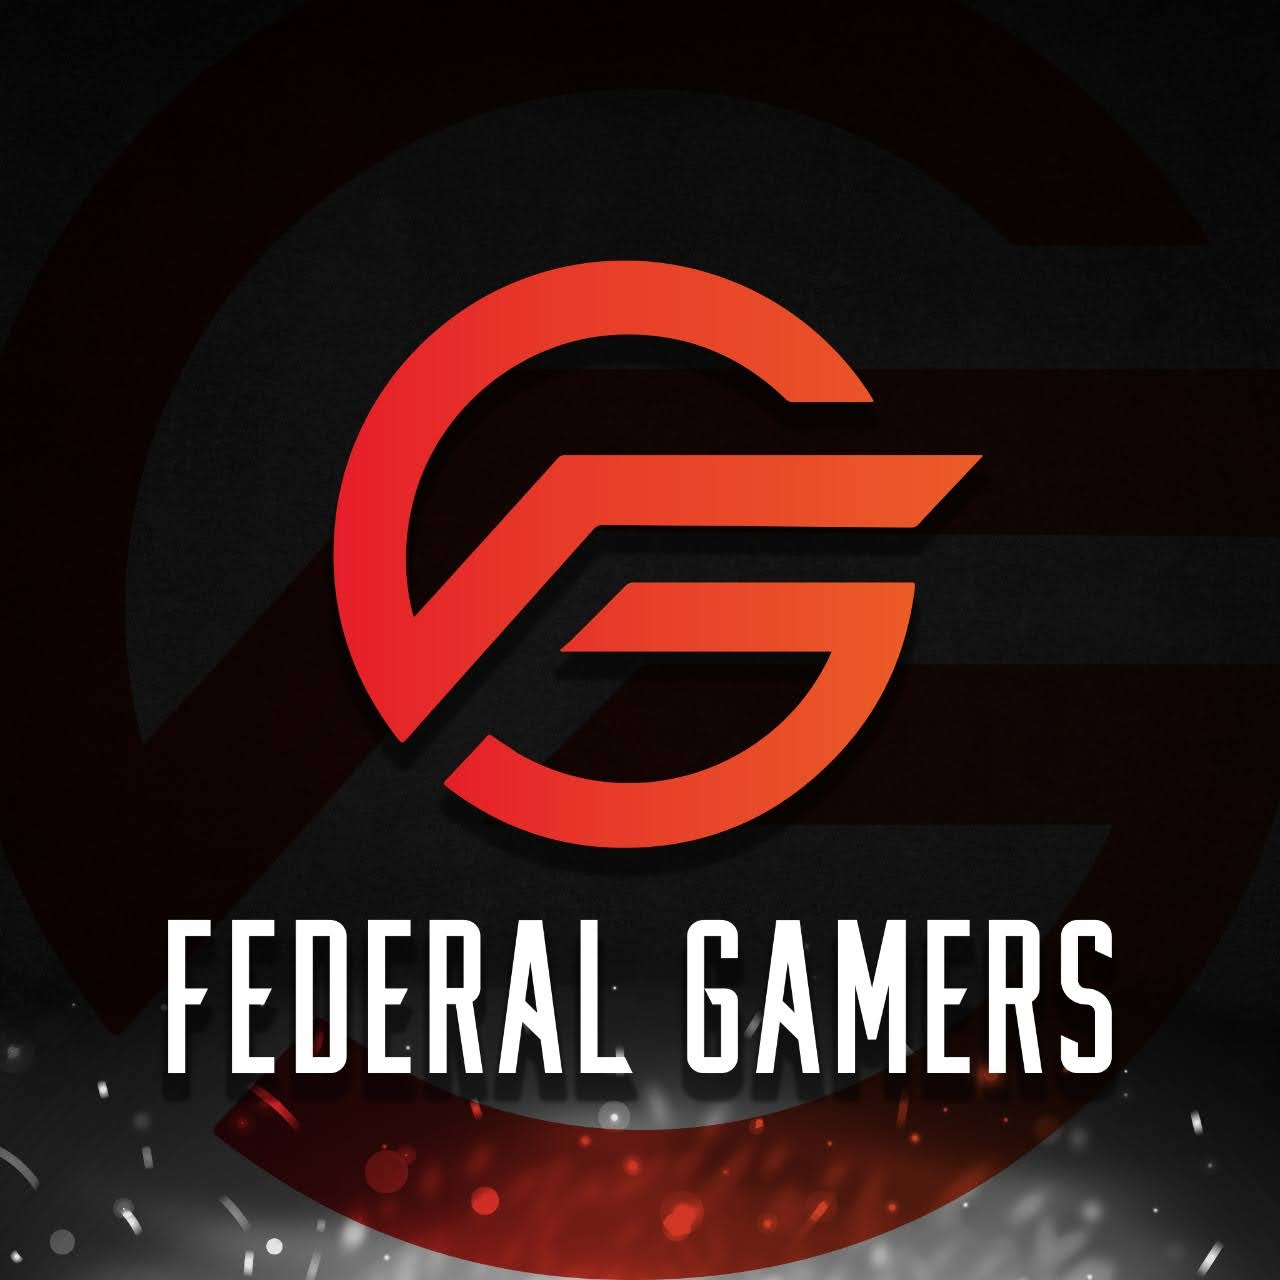 Federal Gamers